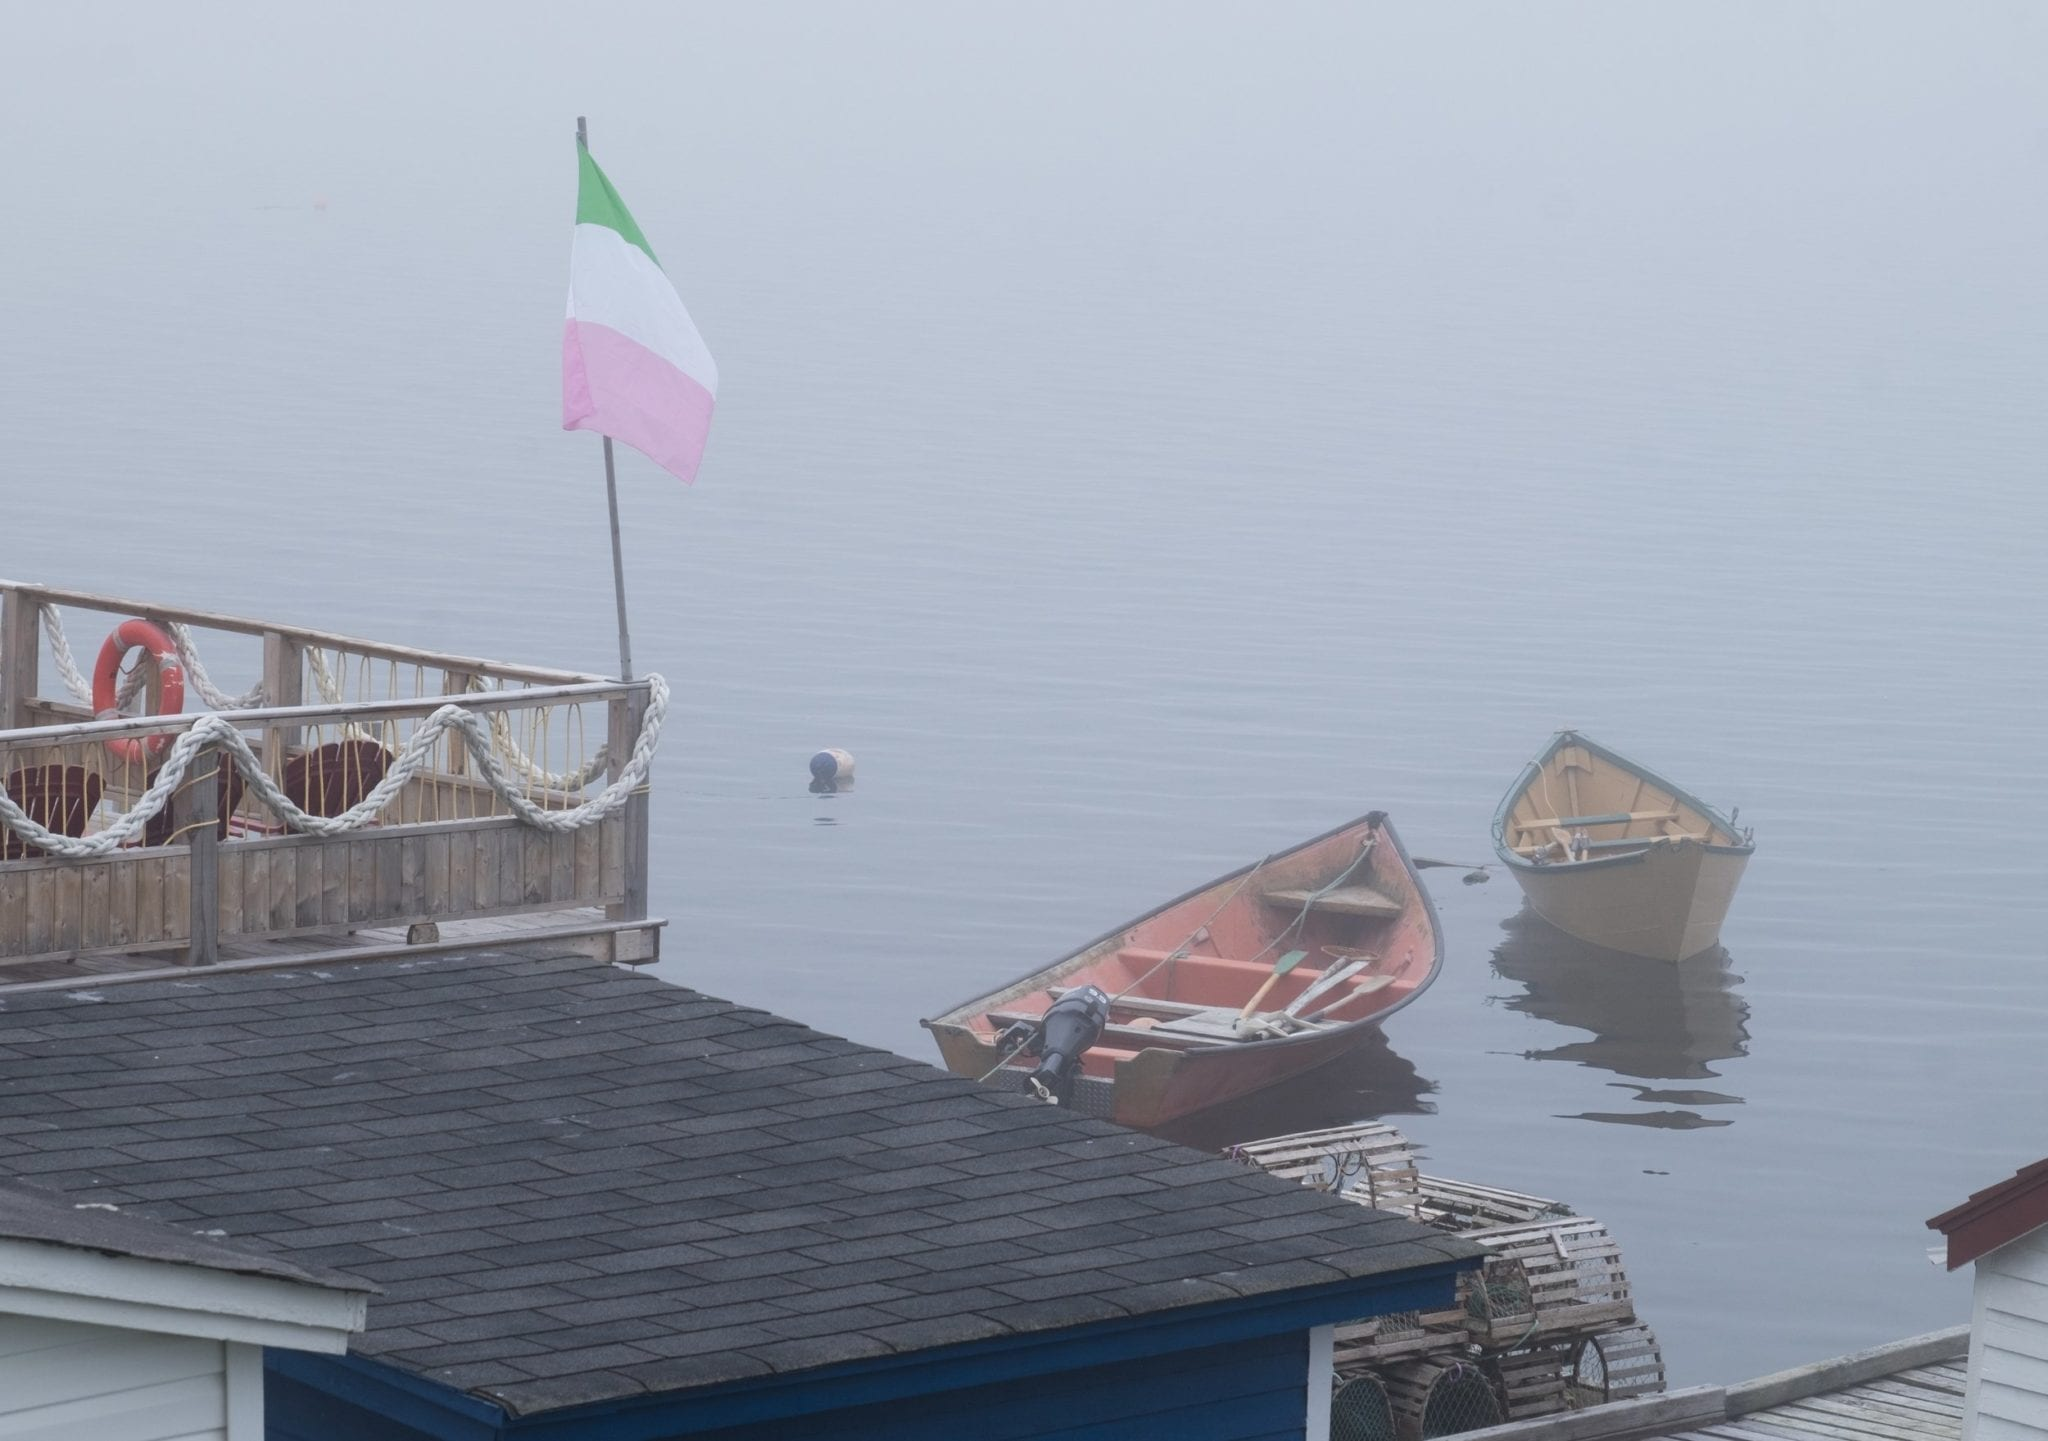 Rowboats in a foggy gray harbor. A flagpole with the green, white and pink Newfoundland independence flag on top.